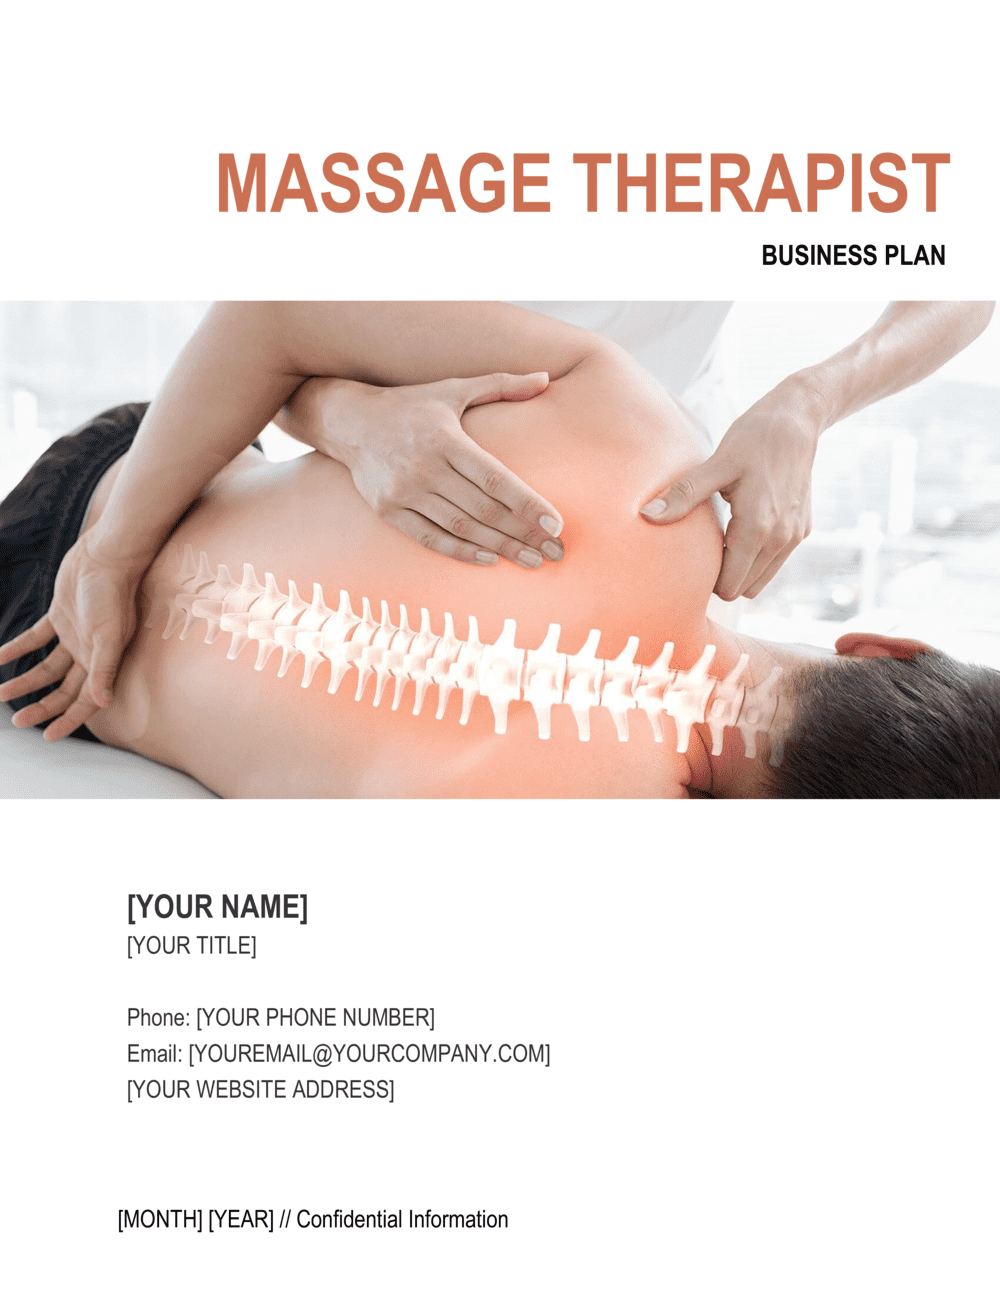 Business-in-a-Box's Massage Therapist Business Plan Template